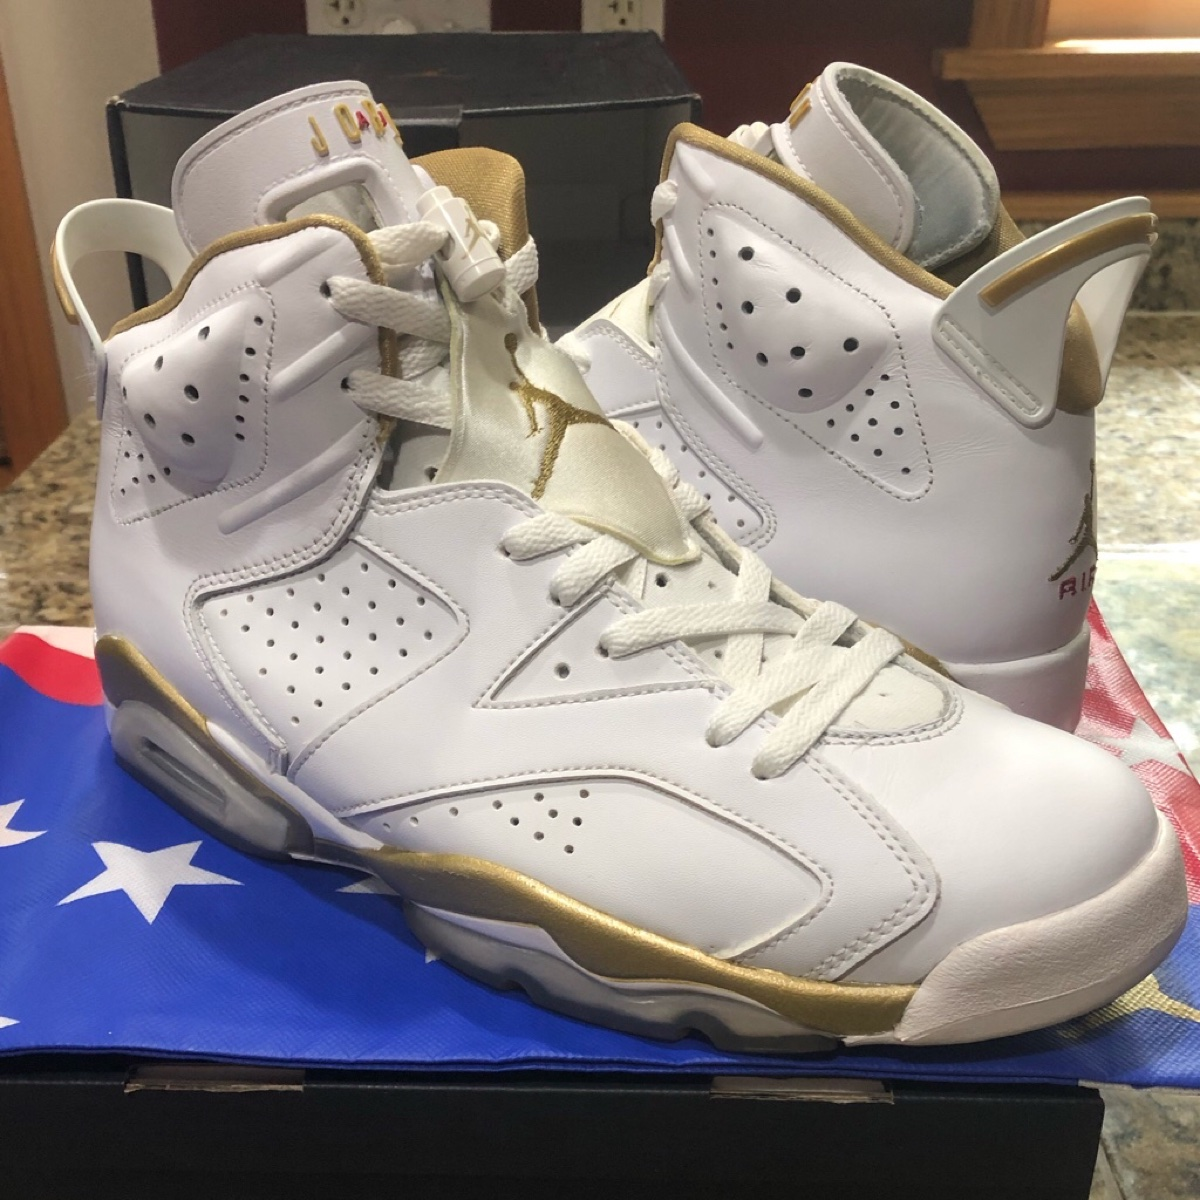 Air Jordan 6 GMP Golden Moments Pack 2012 VNDS Size 10